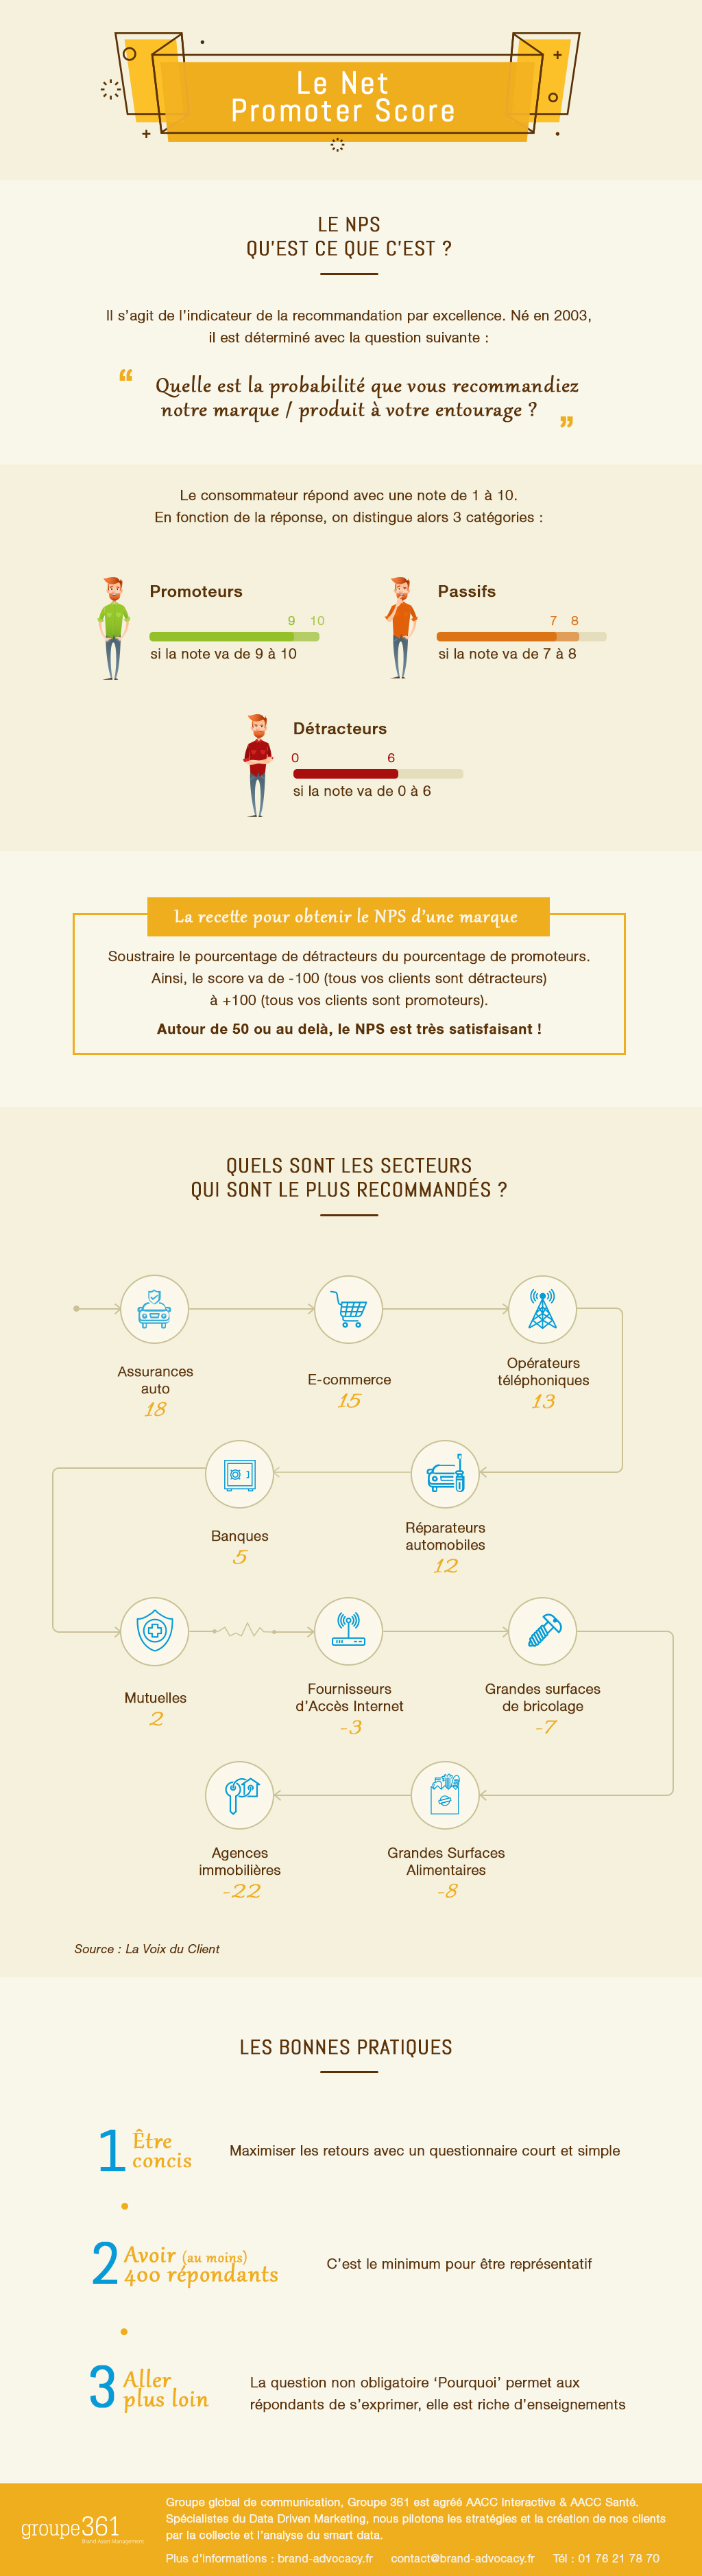 Infographie NPS